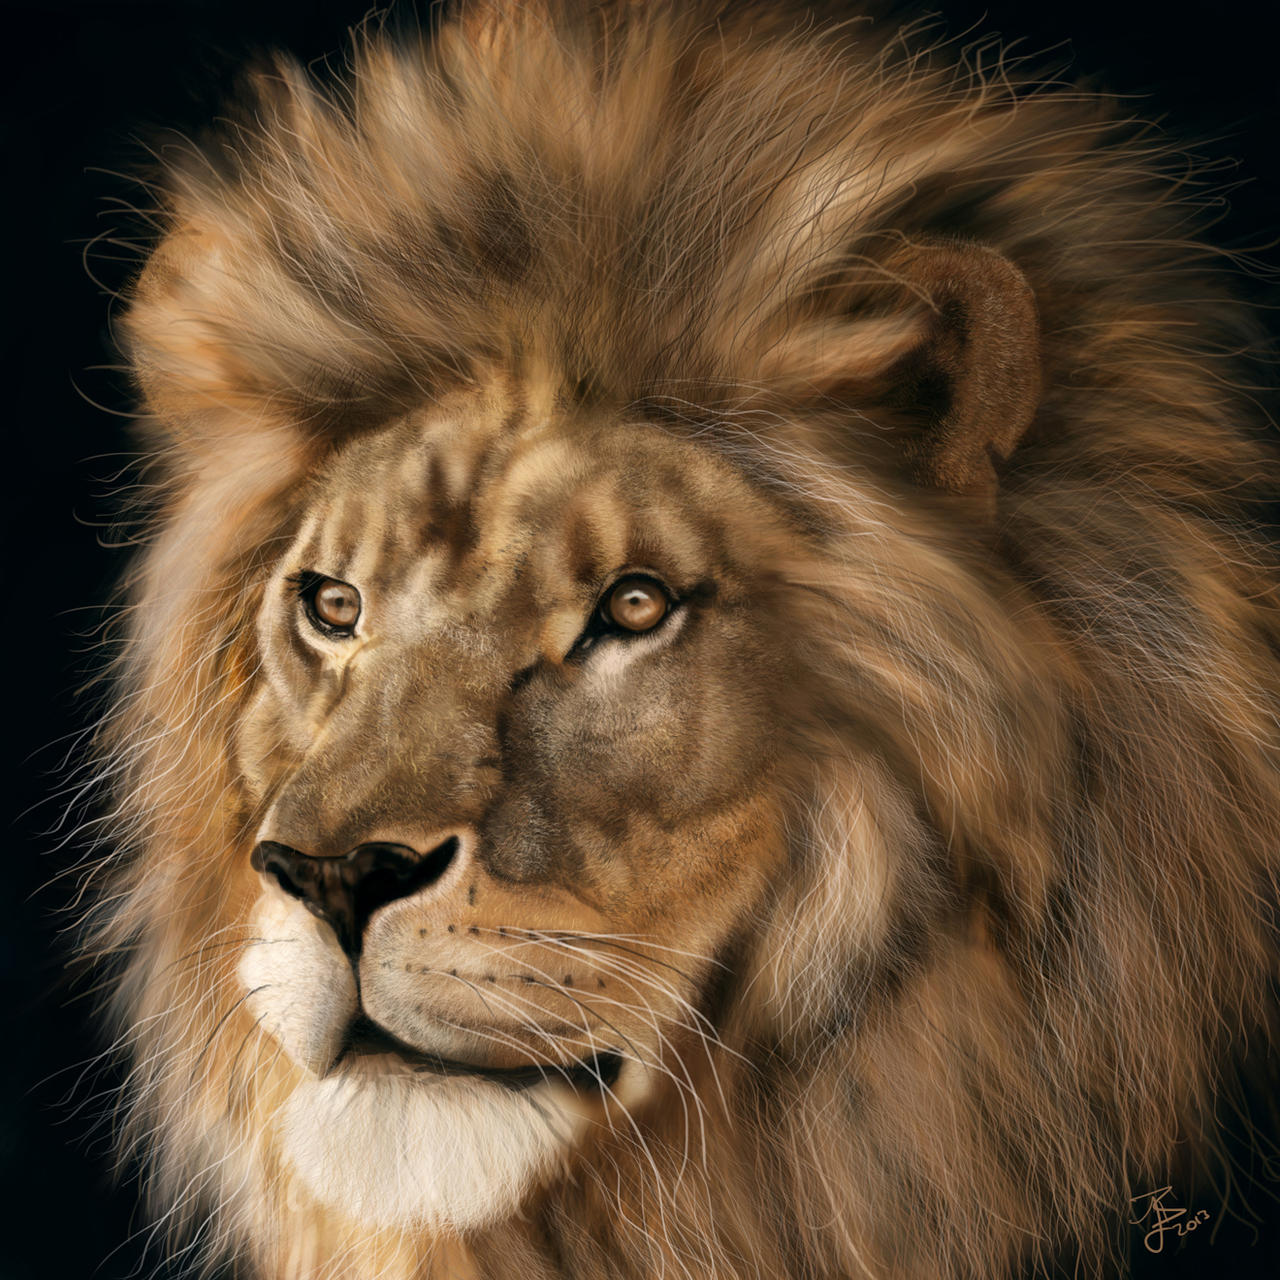 Lion Study by lberry1976